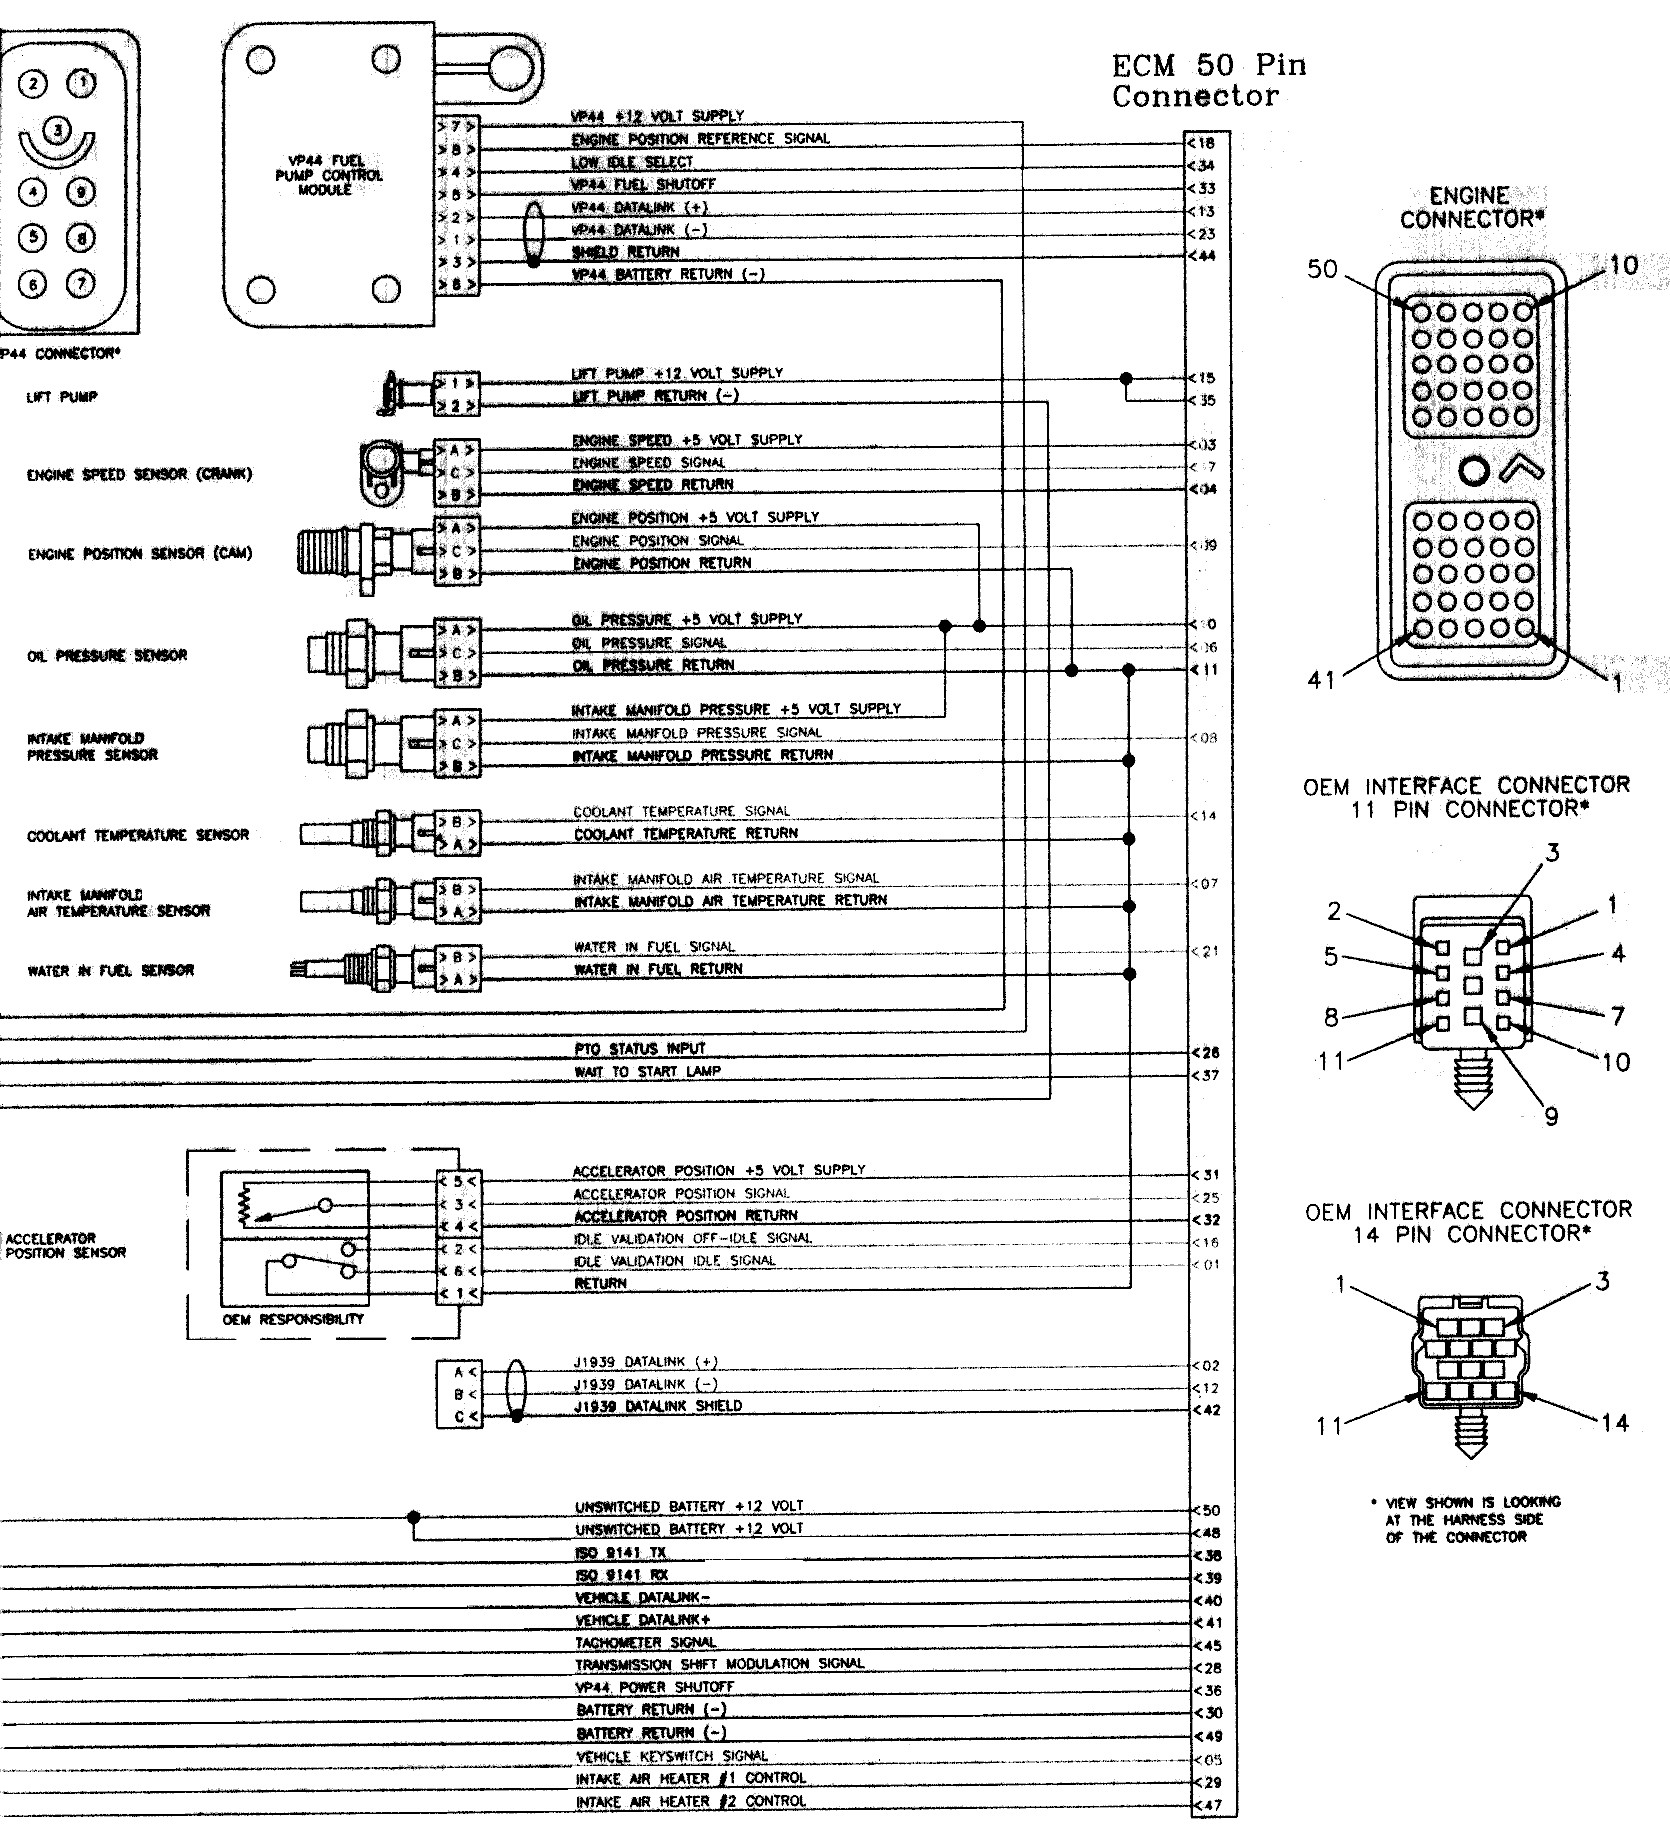 2002 Dodge Heater Wiring Diagram - Wiring Diagrams Folder on